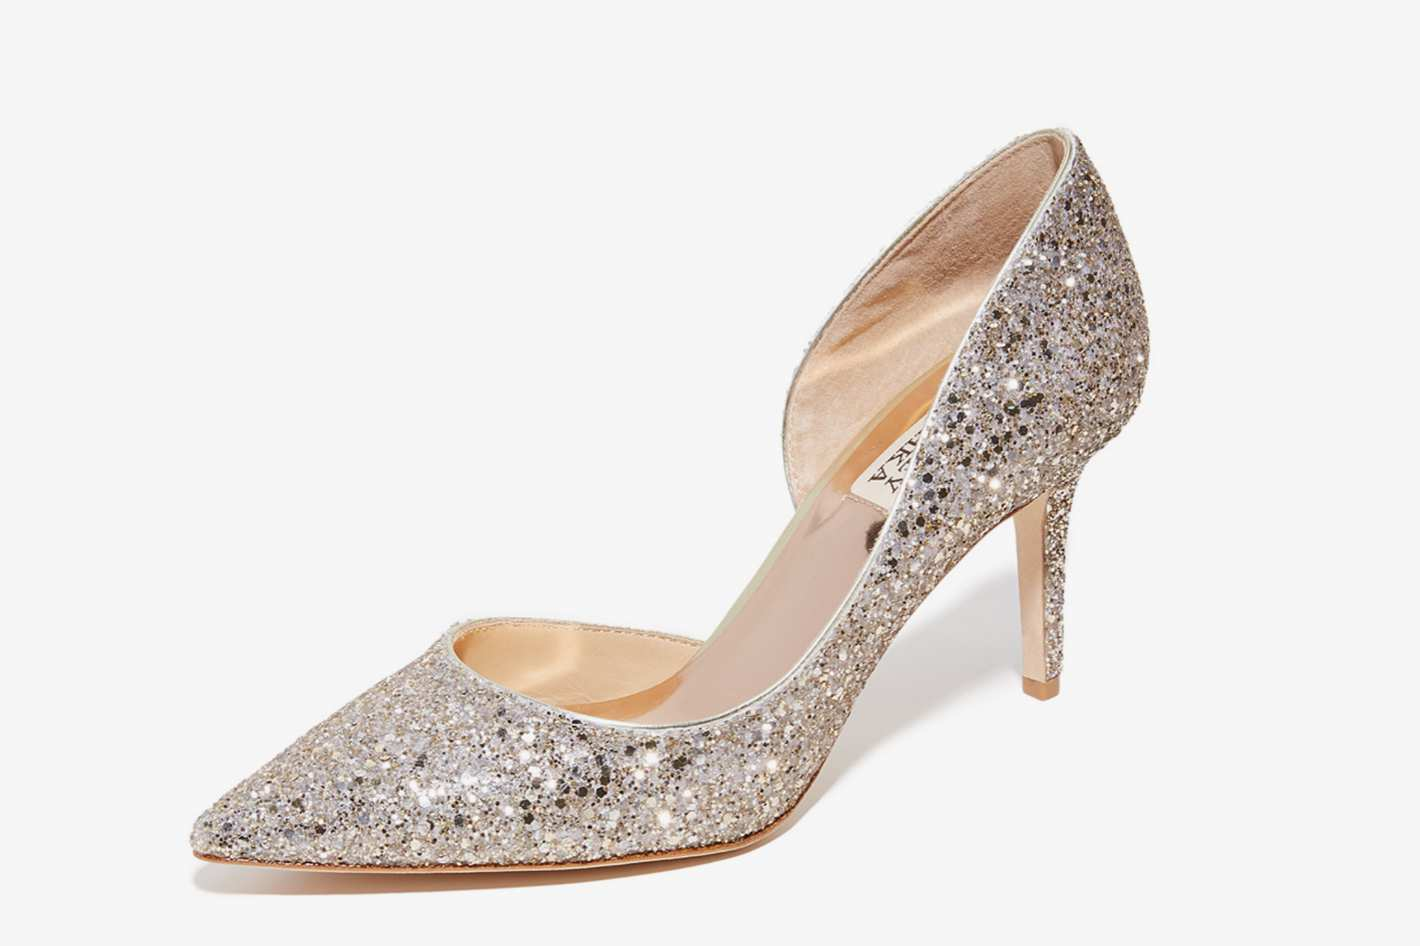 Badgley Mischka Daisy Glitter Pumps